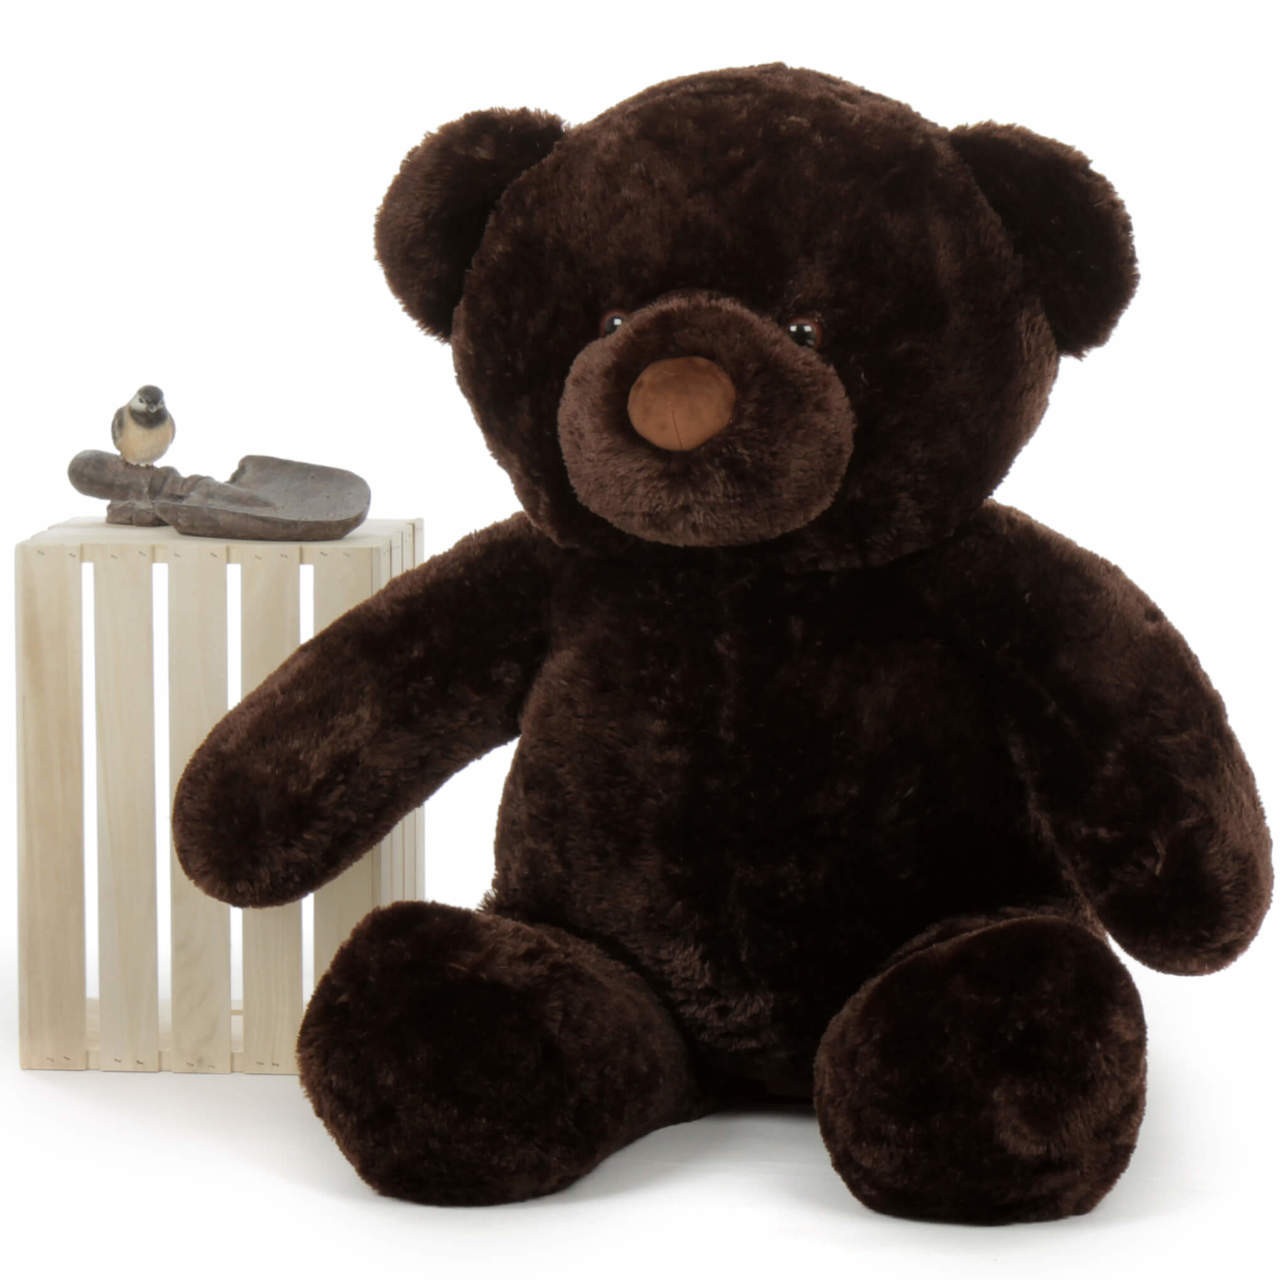 Munchkin Chubs Adorable Teddy Bear 48 inches